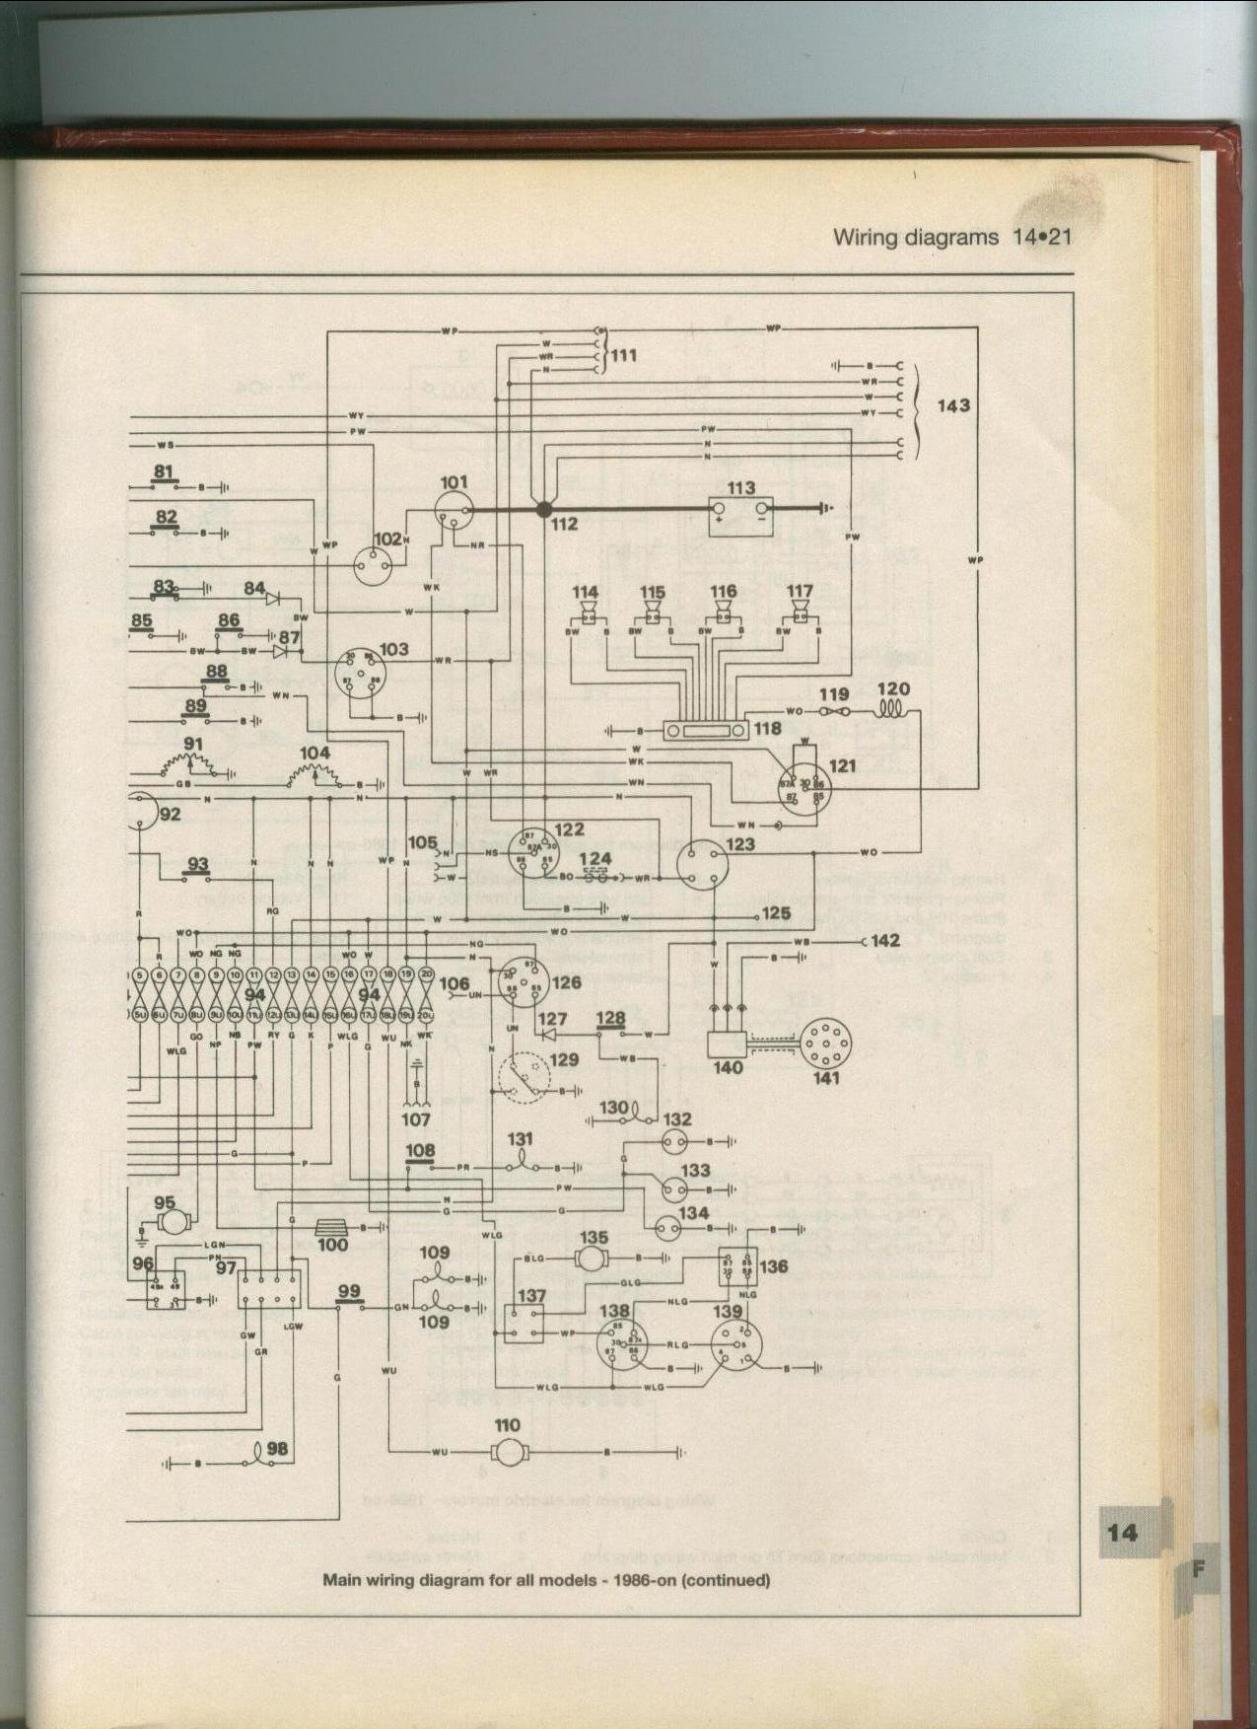 Classic Wiring Diagram Another Blog About Freightliner Fld Range Rover Easy To Read Diagrams Car Vw